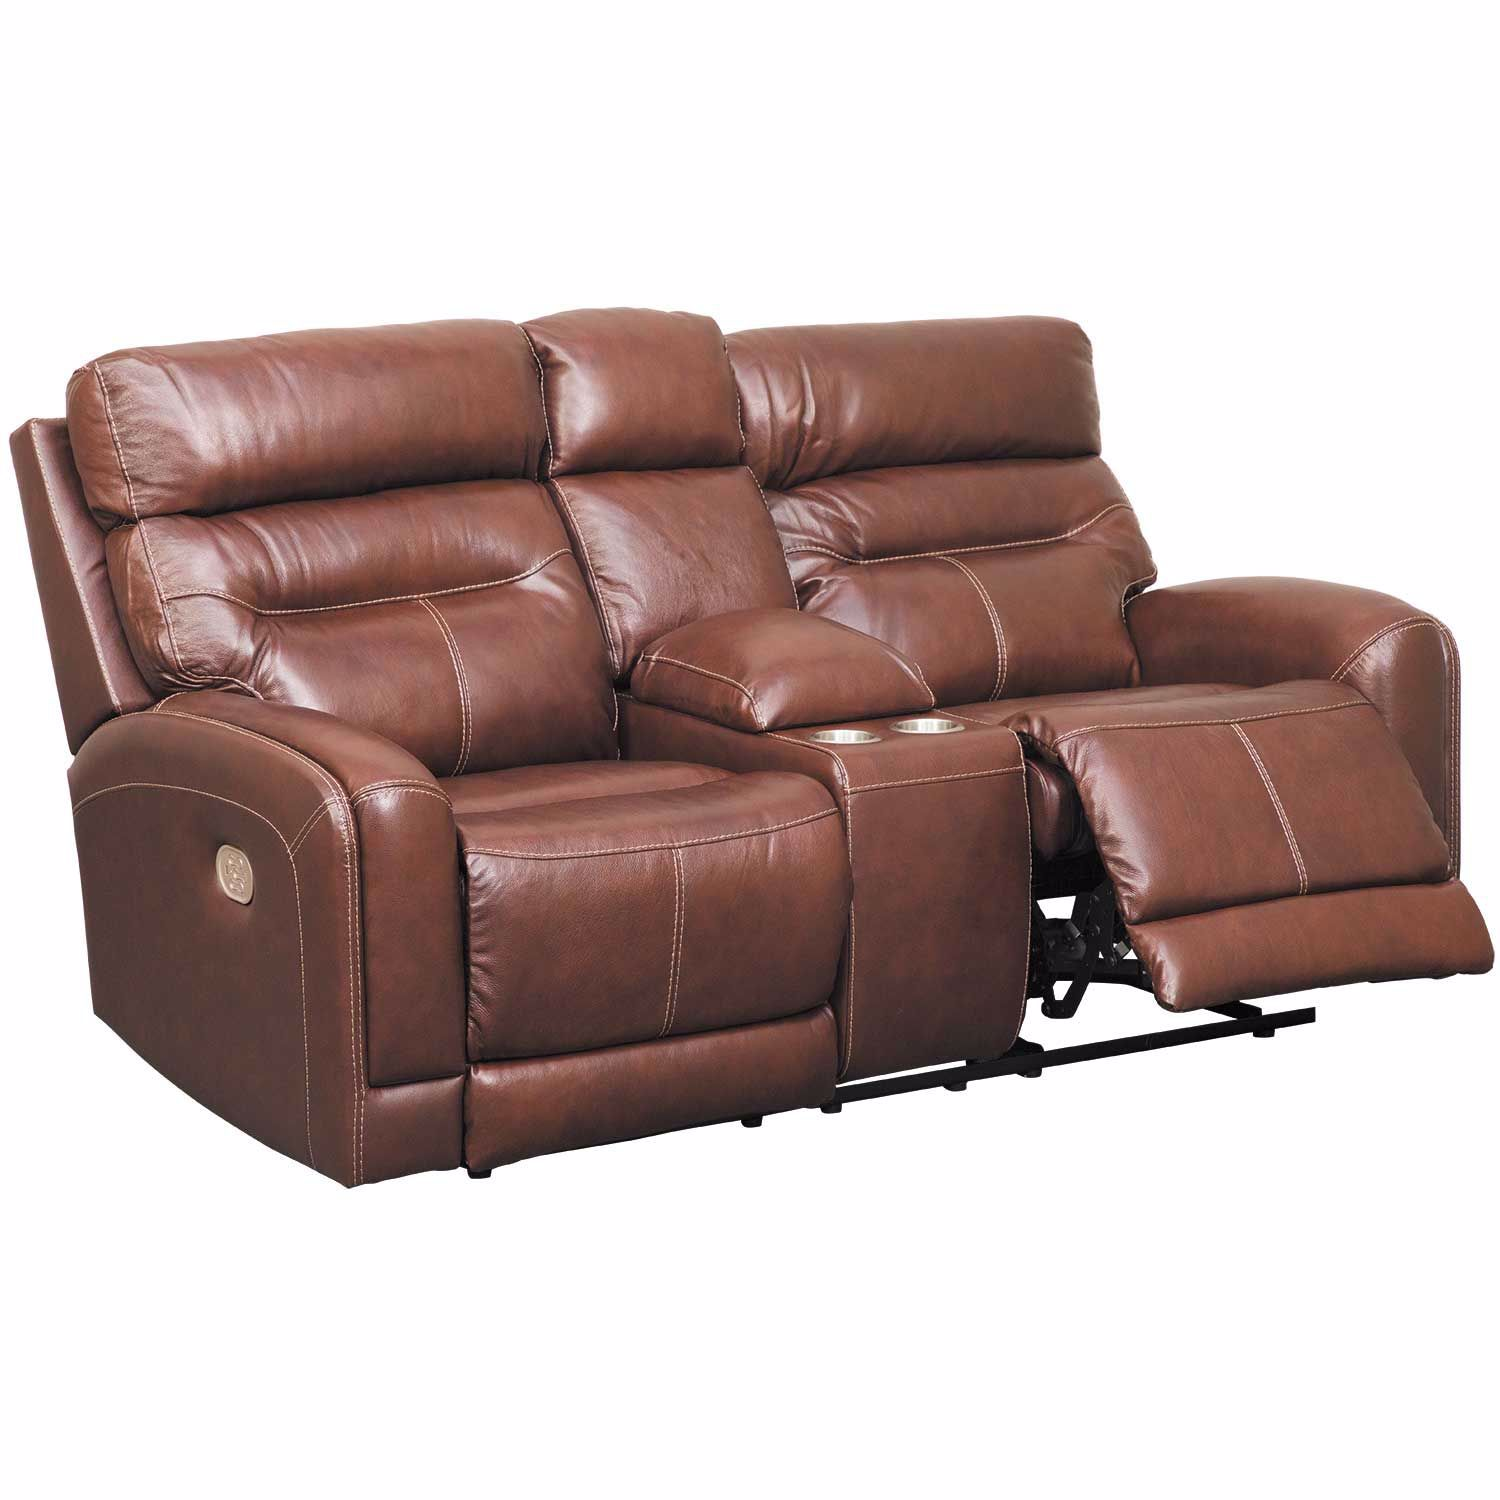 Enjoyable Sessom Leather Power Reclining Console Loveseat With Adjustable Headrest And Lumbar Ibusinesslaw Wood Chair Design Ideas Ibusinesslaworg